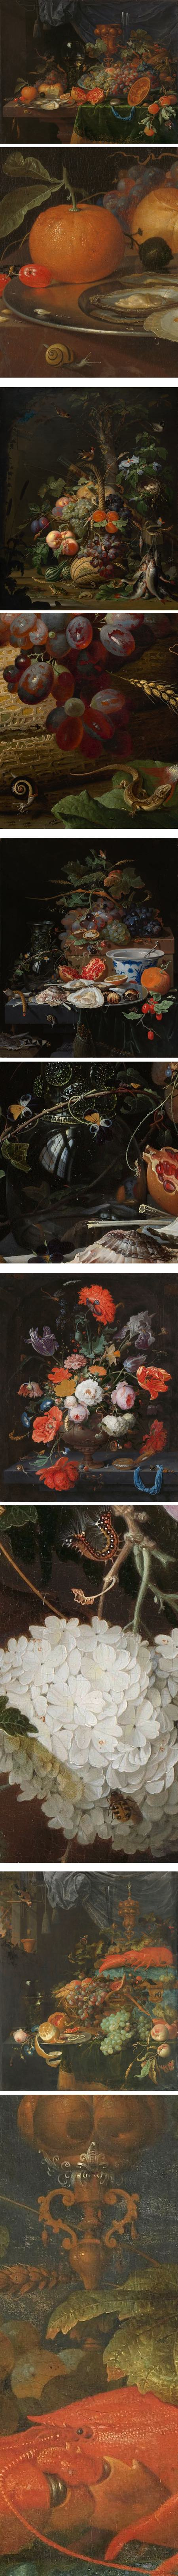 Abraham Mignon, Dutch Golden Age still life and florals